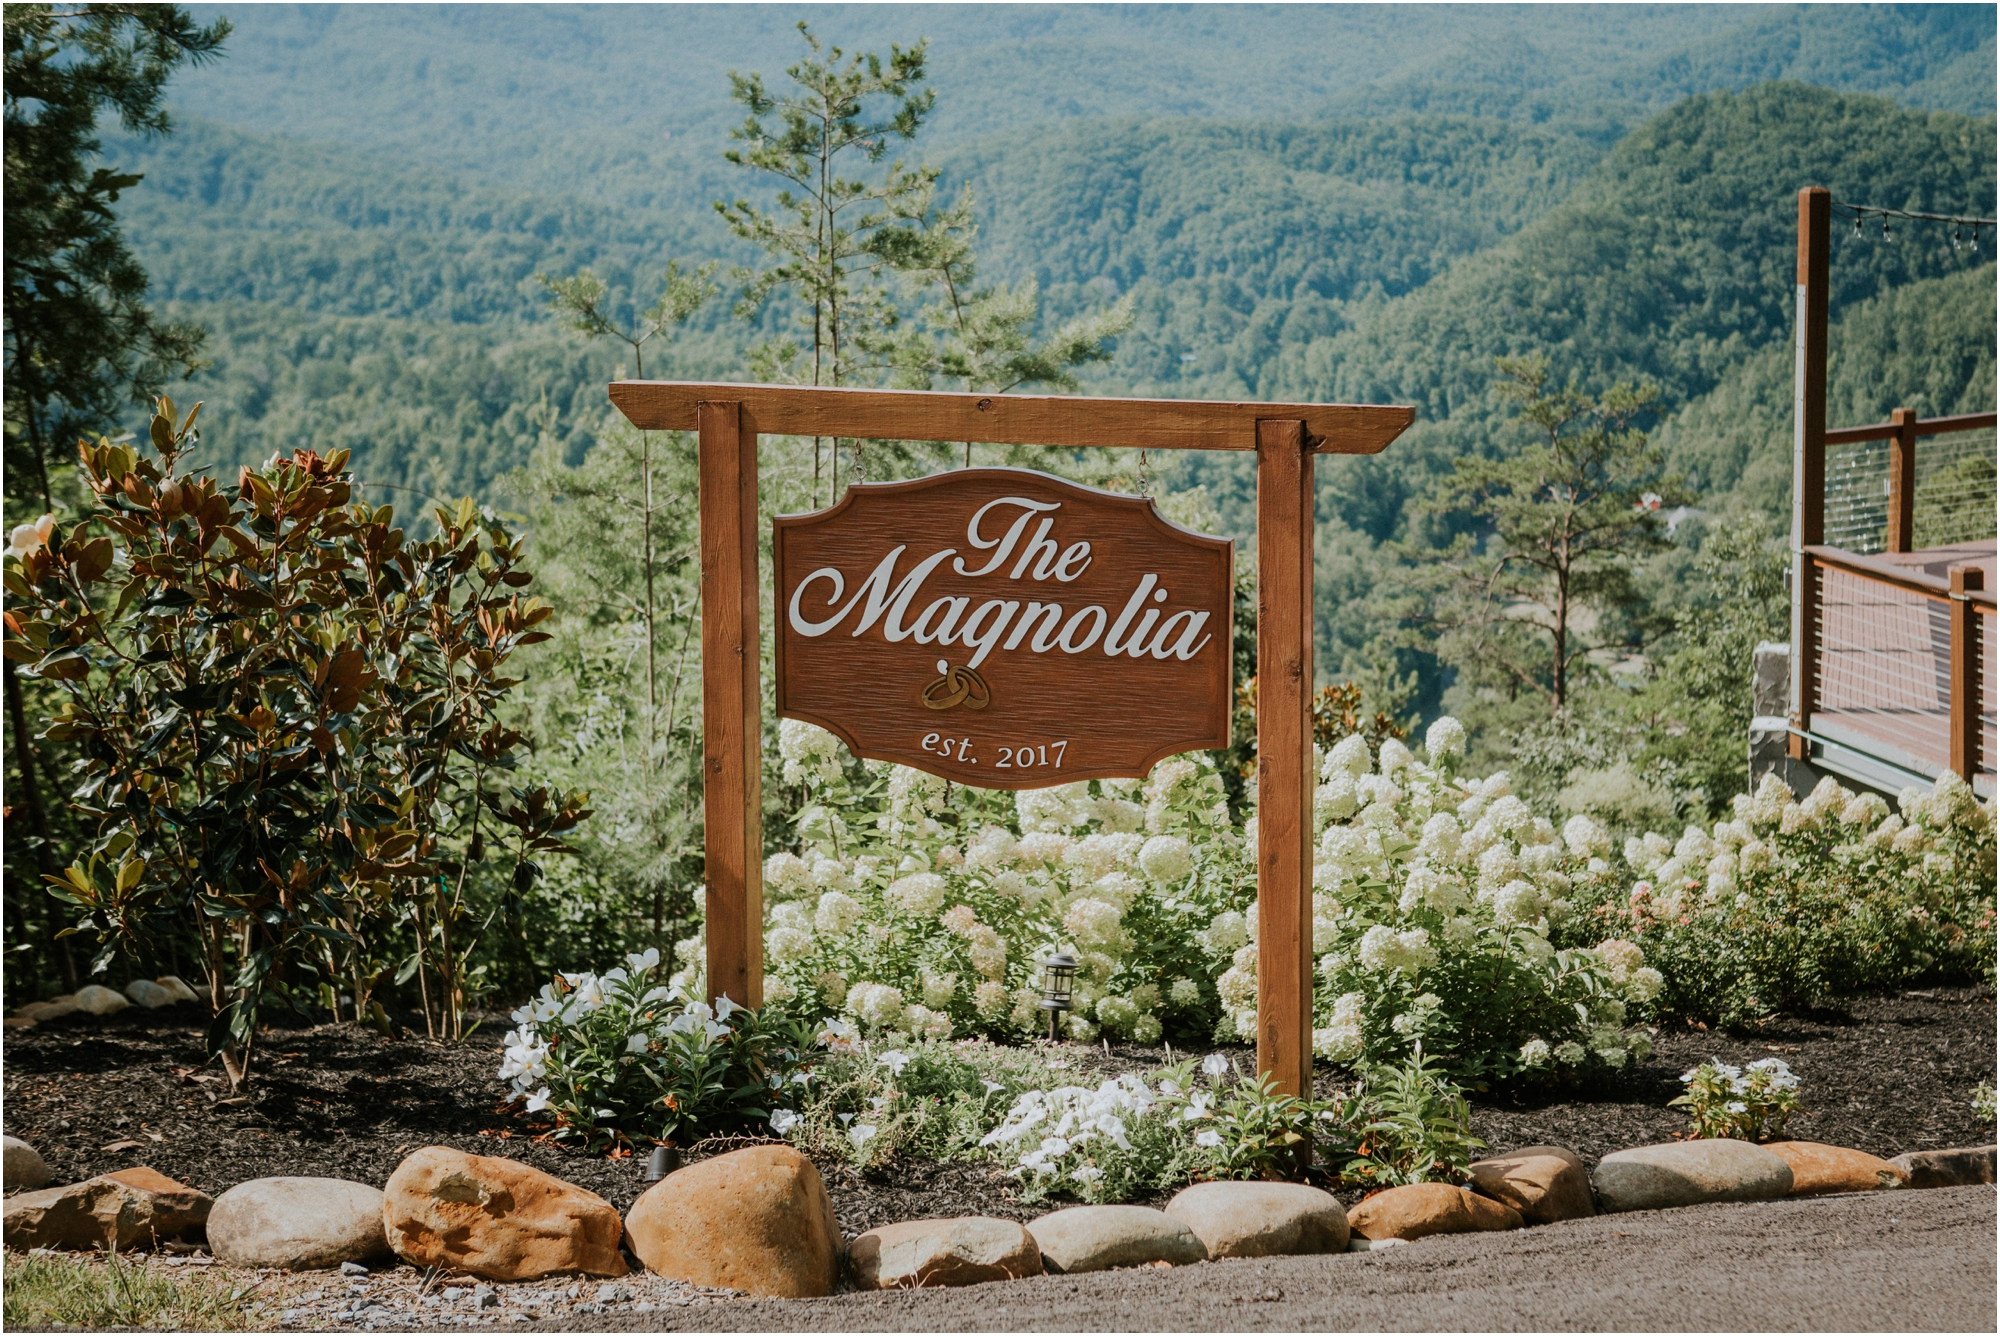 cabin-parkside-resort-the-magnolia-venue-tennessee-mountain-views-intimate-wedding_0100.jpg